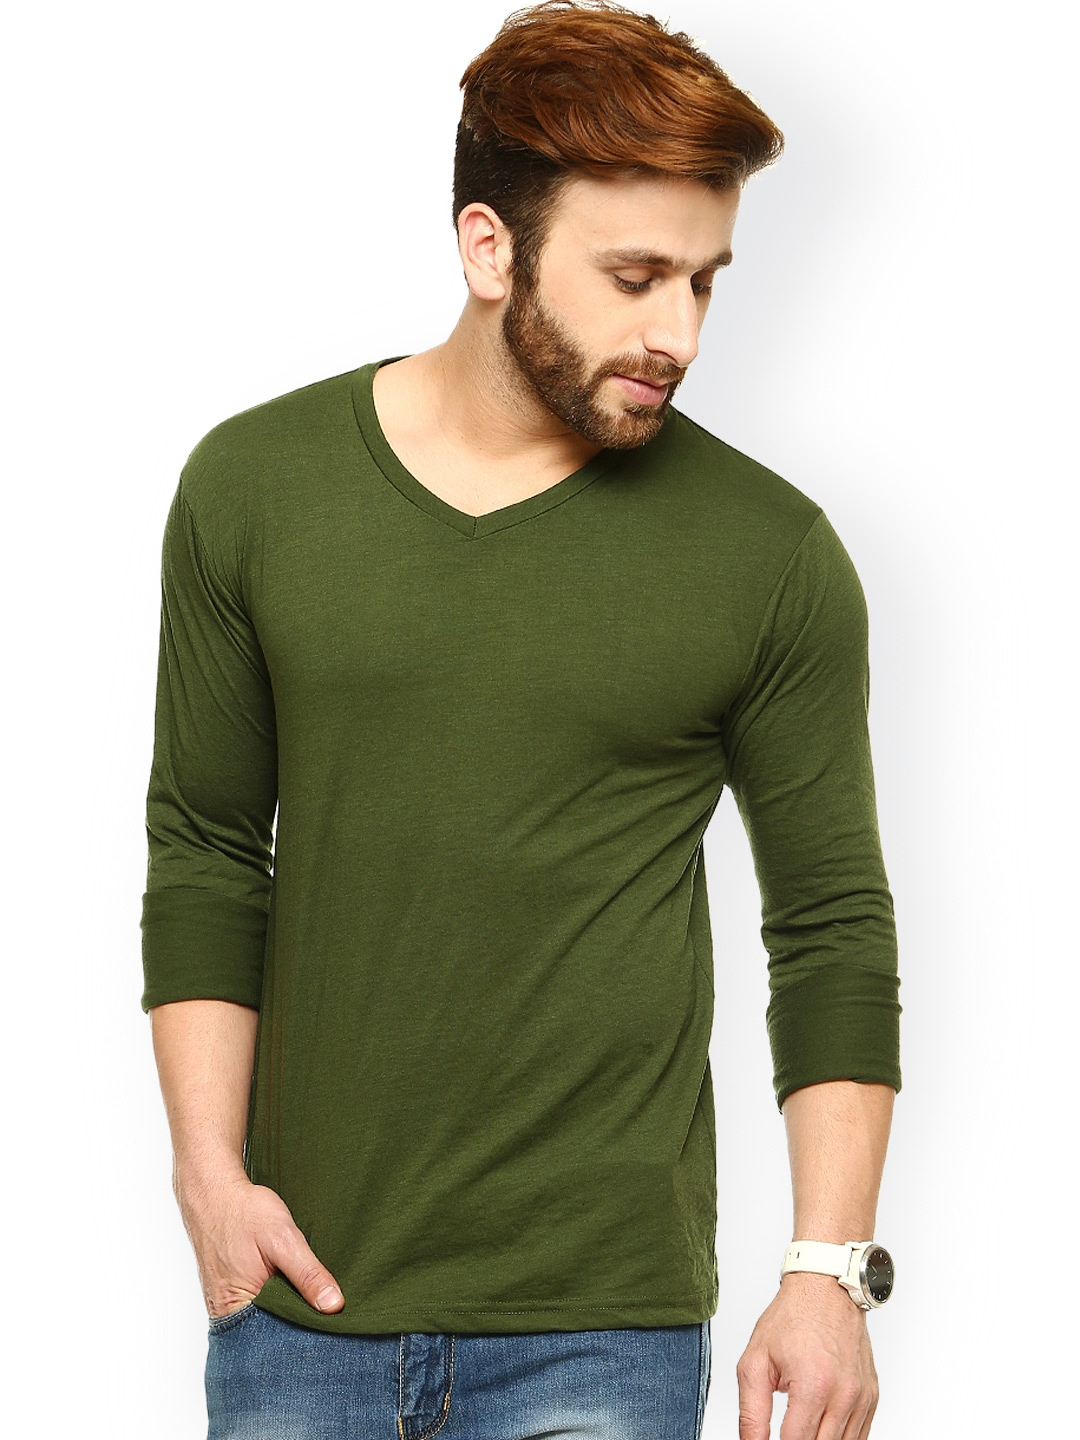 Olive Green Shirt Mens Artee Shirt